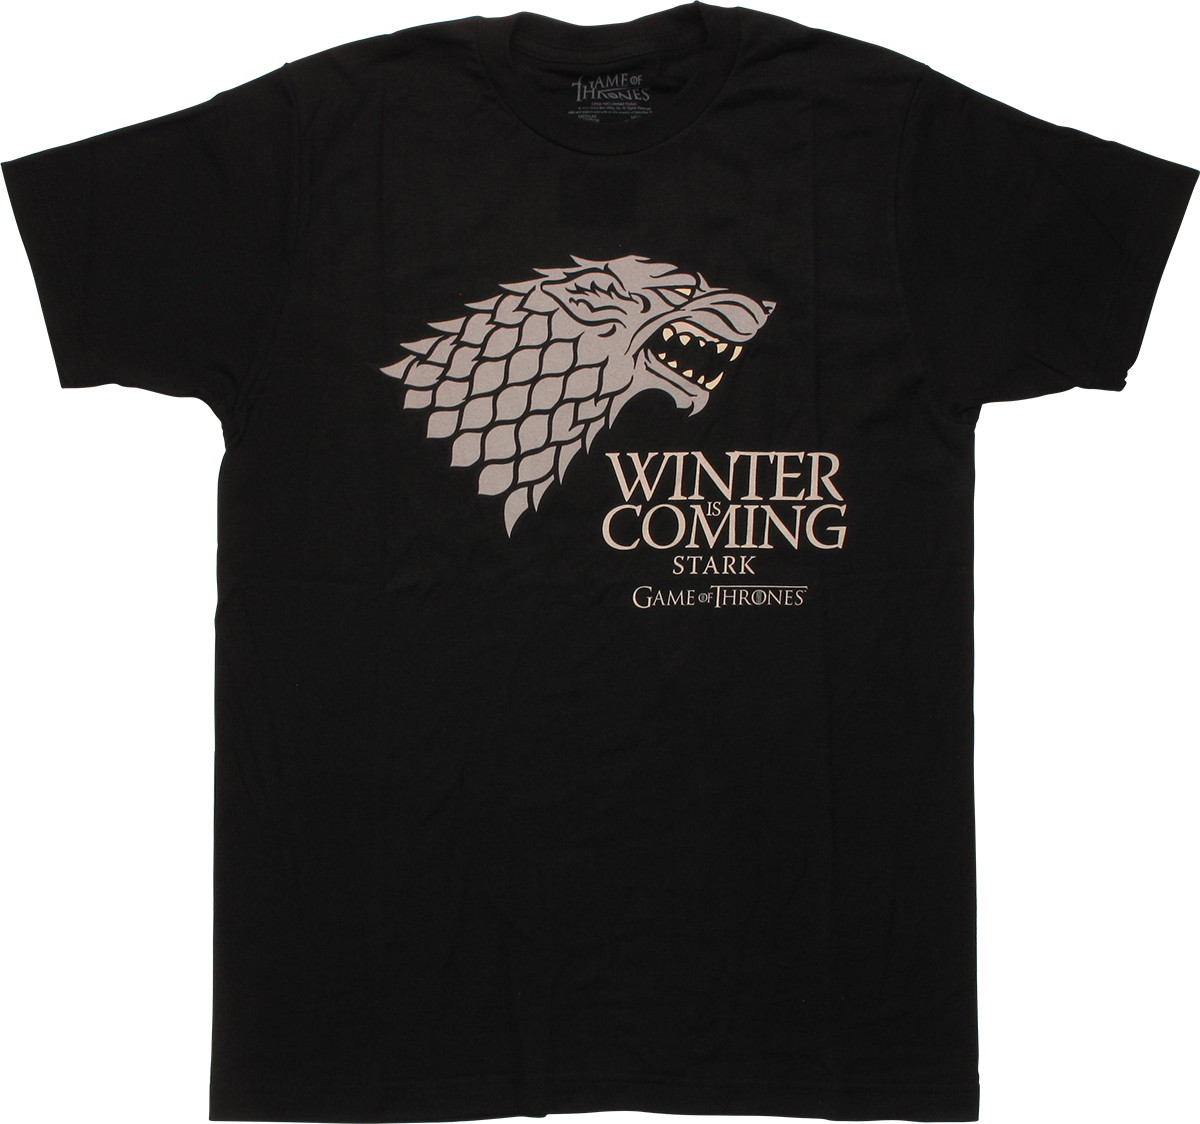 Game of thrones winter is coming stark t shirt for Throne of games shirt